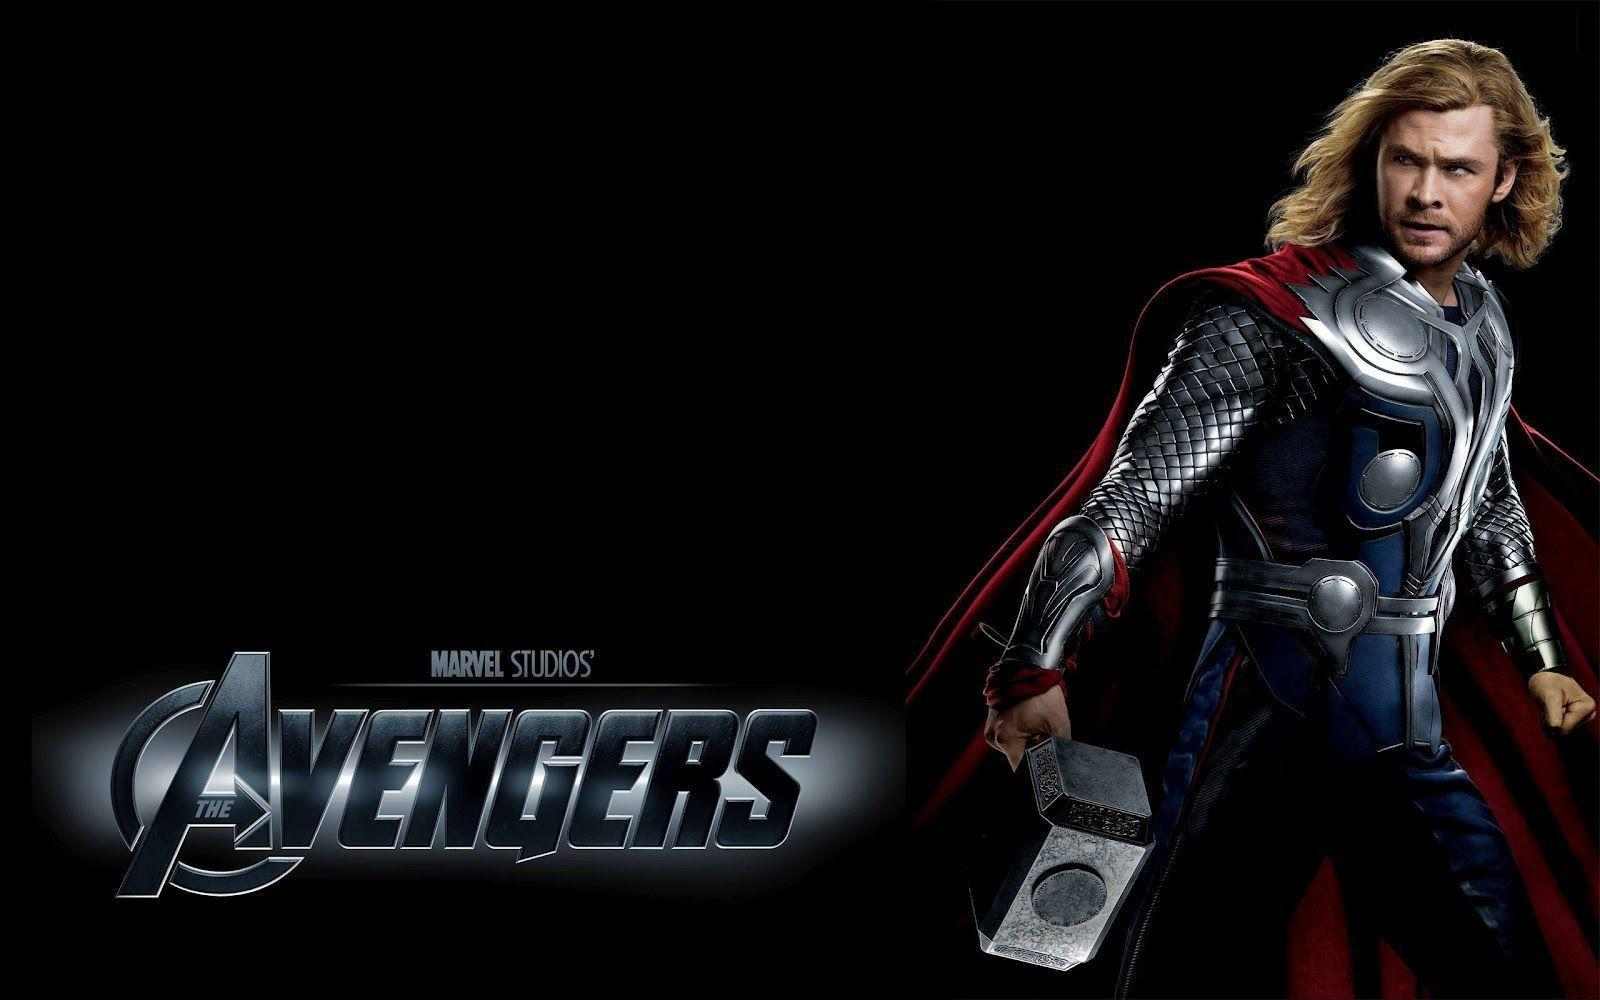 Wallpapers For > Avengers Wallpapers Hd Iron Man